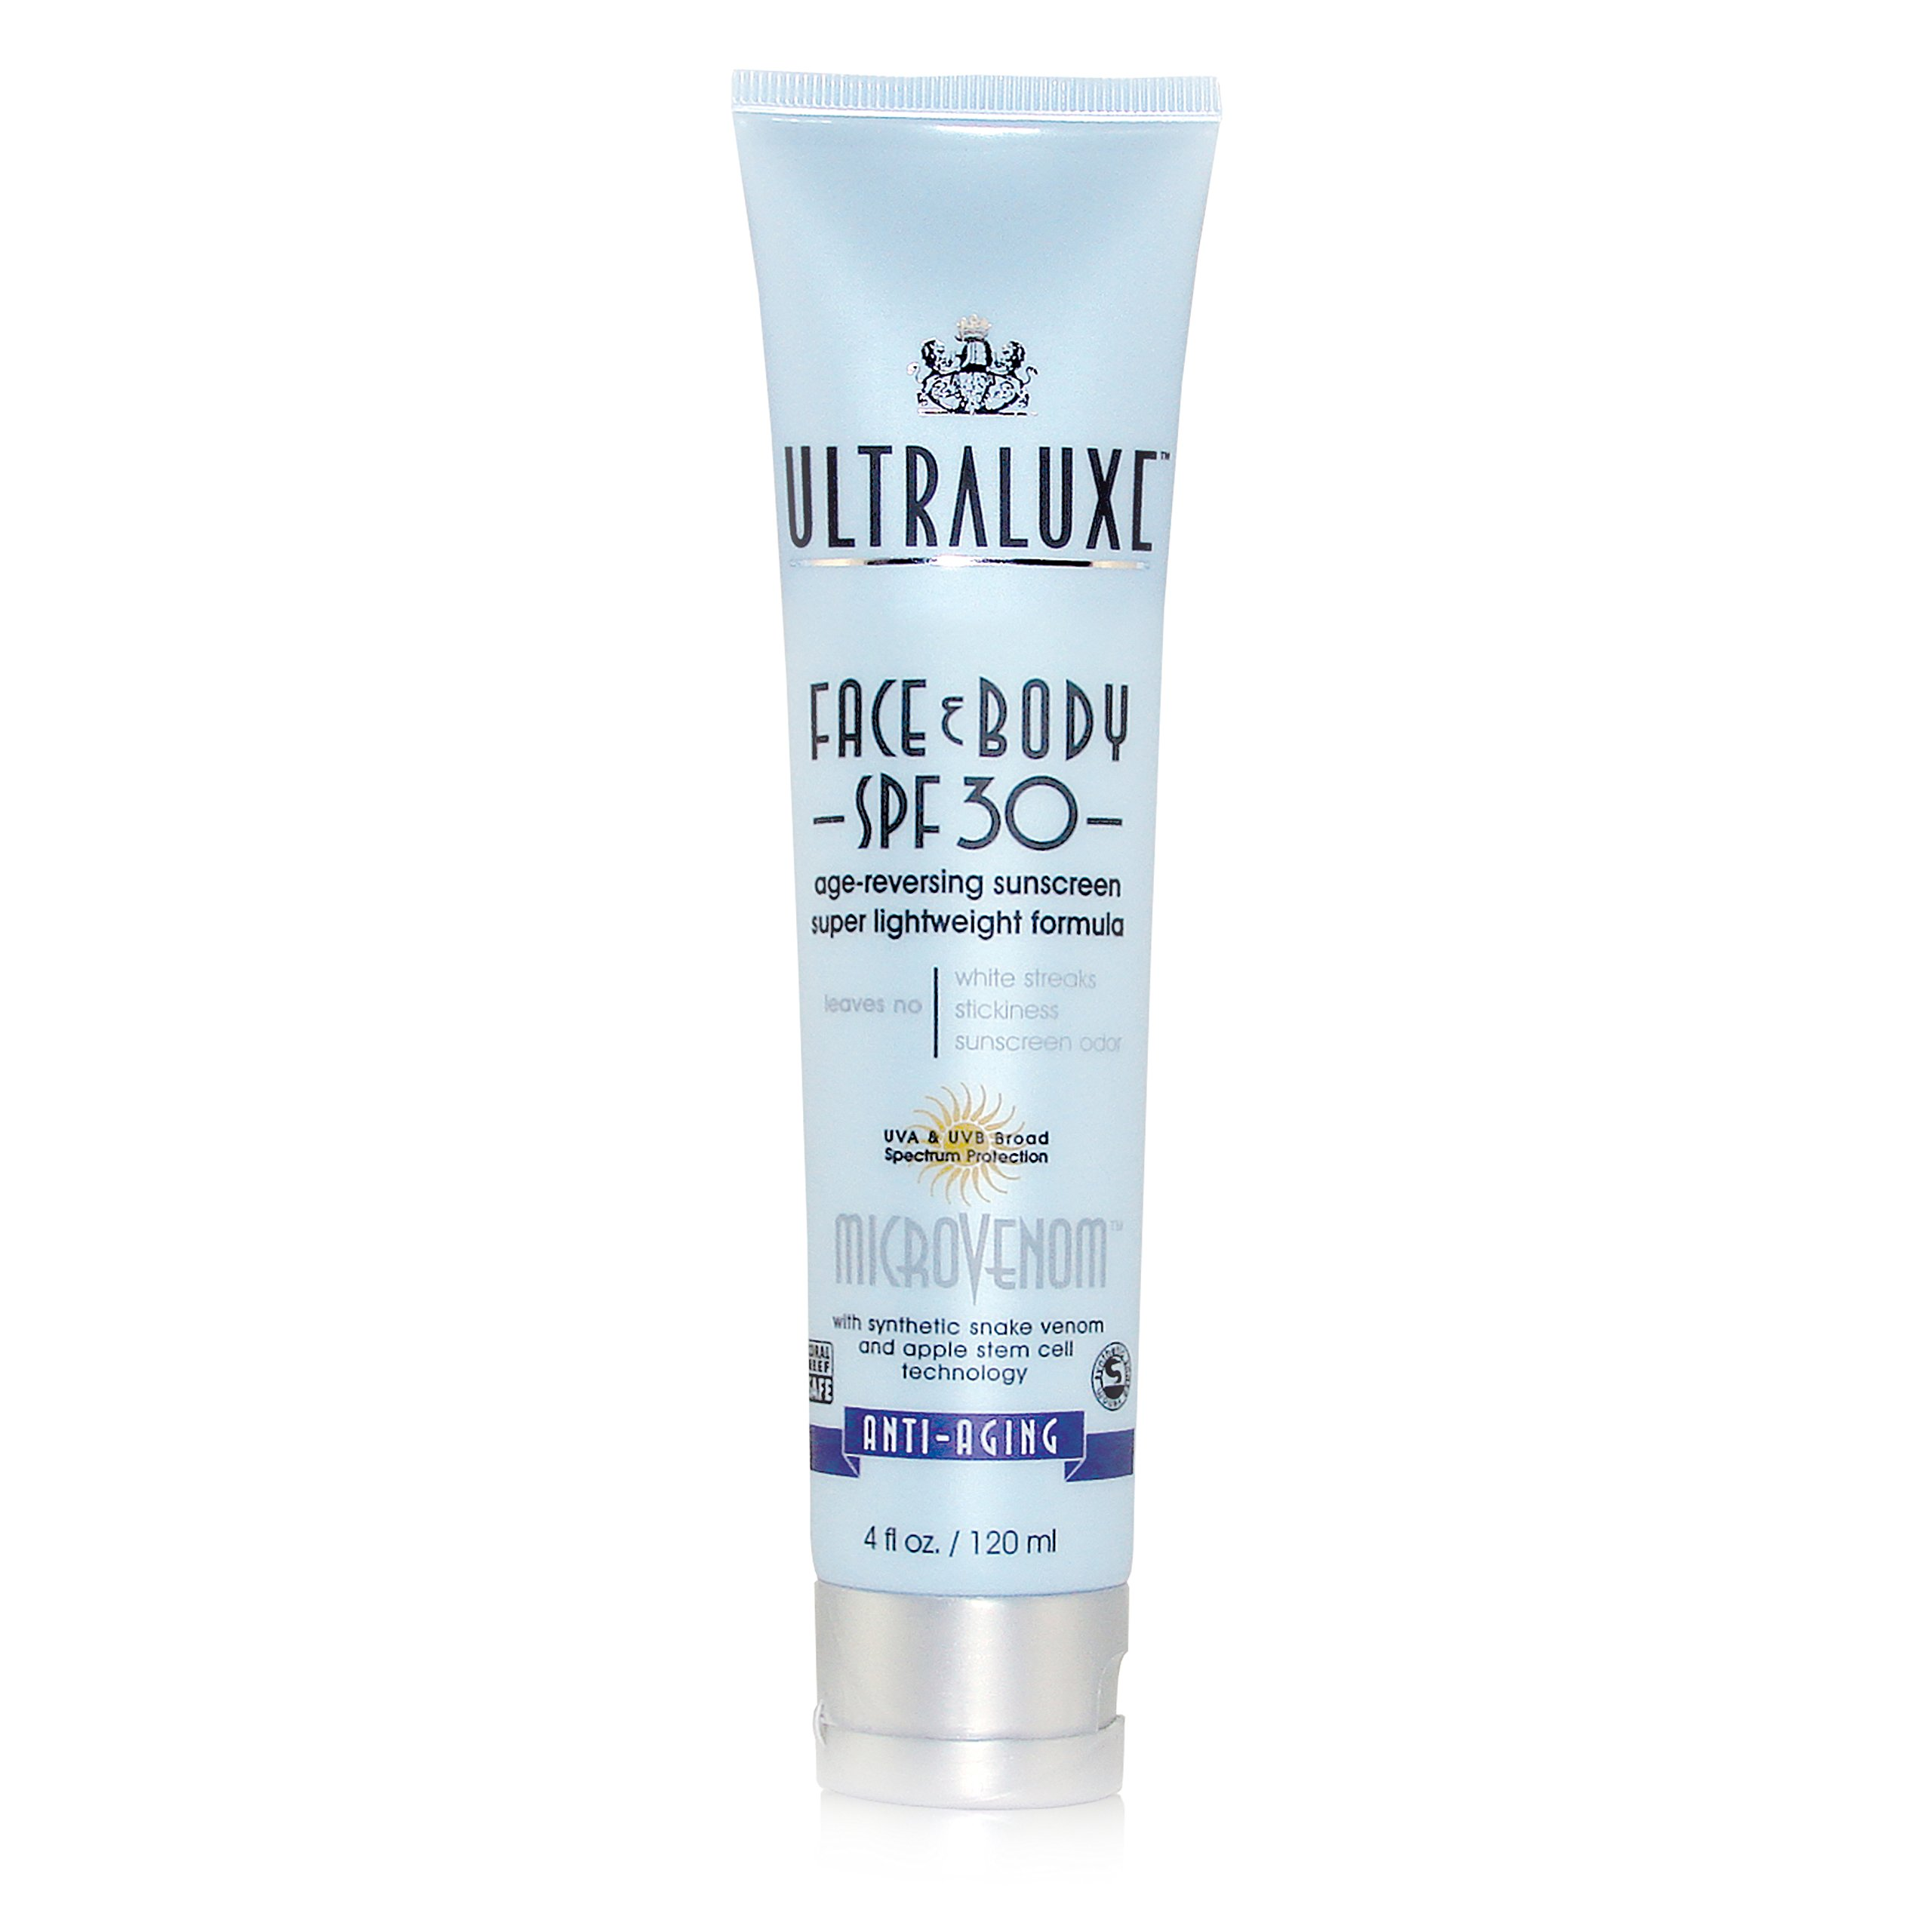 Ultraluxe Micro-Venom Face and Body SPF 30 Sunscreen, 4 Oz